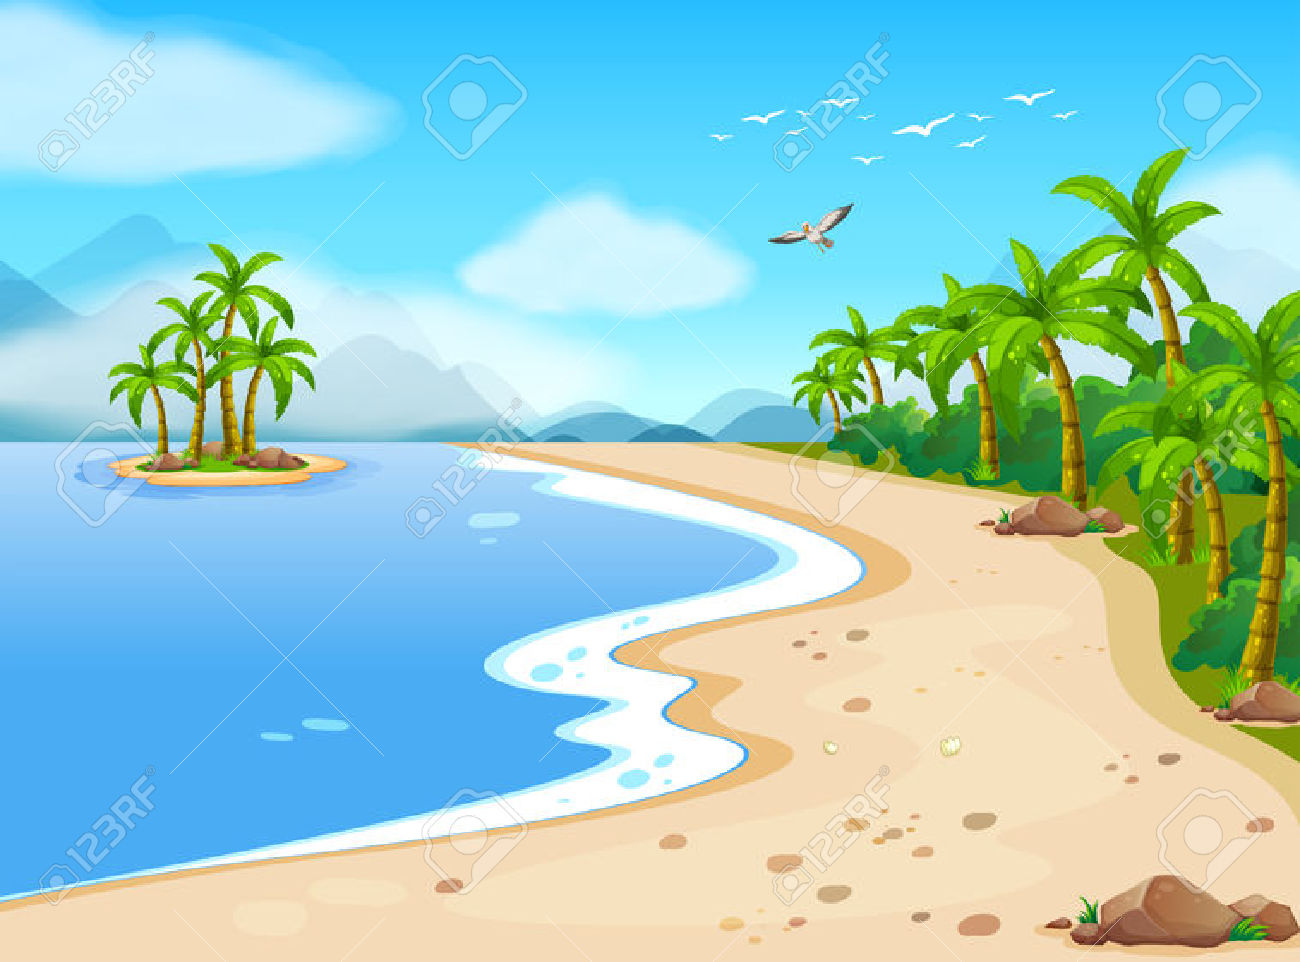 Seashore clipart #6, Download drawings